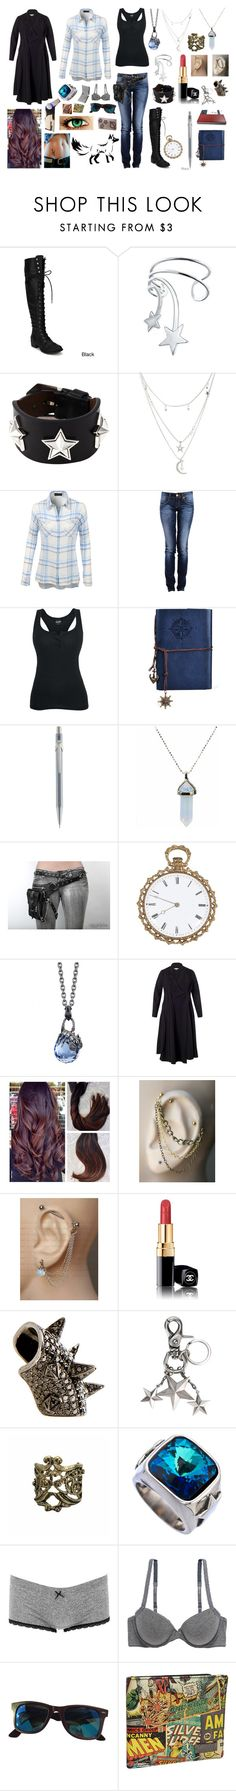 """Gravity falls RP:OC"" by evil-fangirl-overlord ❤ liked on Polyvore featuring Bling Jewelry, Givenchy, Charlotte Russe, LE3NO, Caran D'Ache, Stephen Webster, Chesca, Chanel, Pristine and Sophnet."